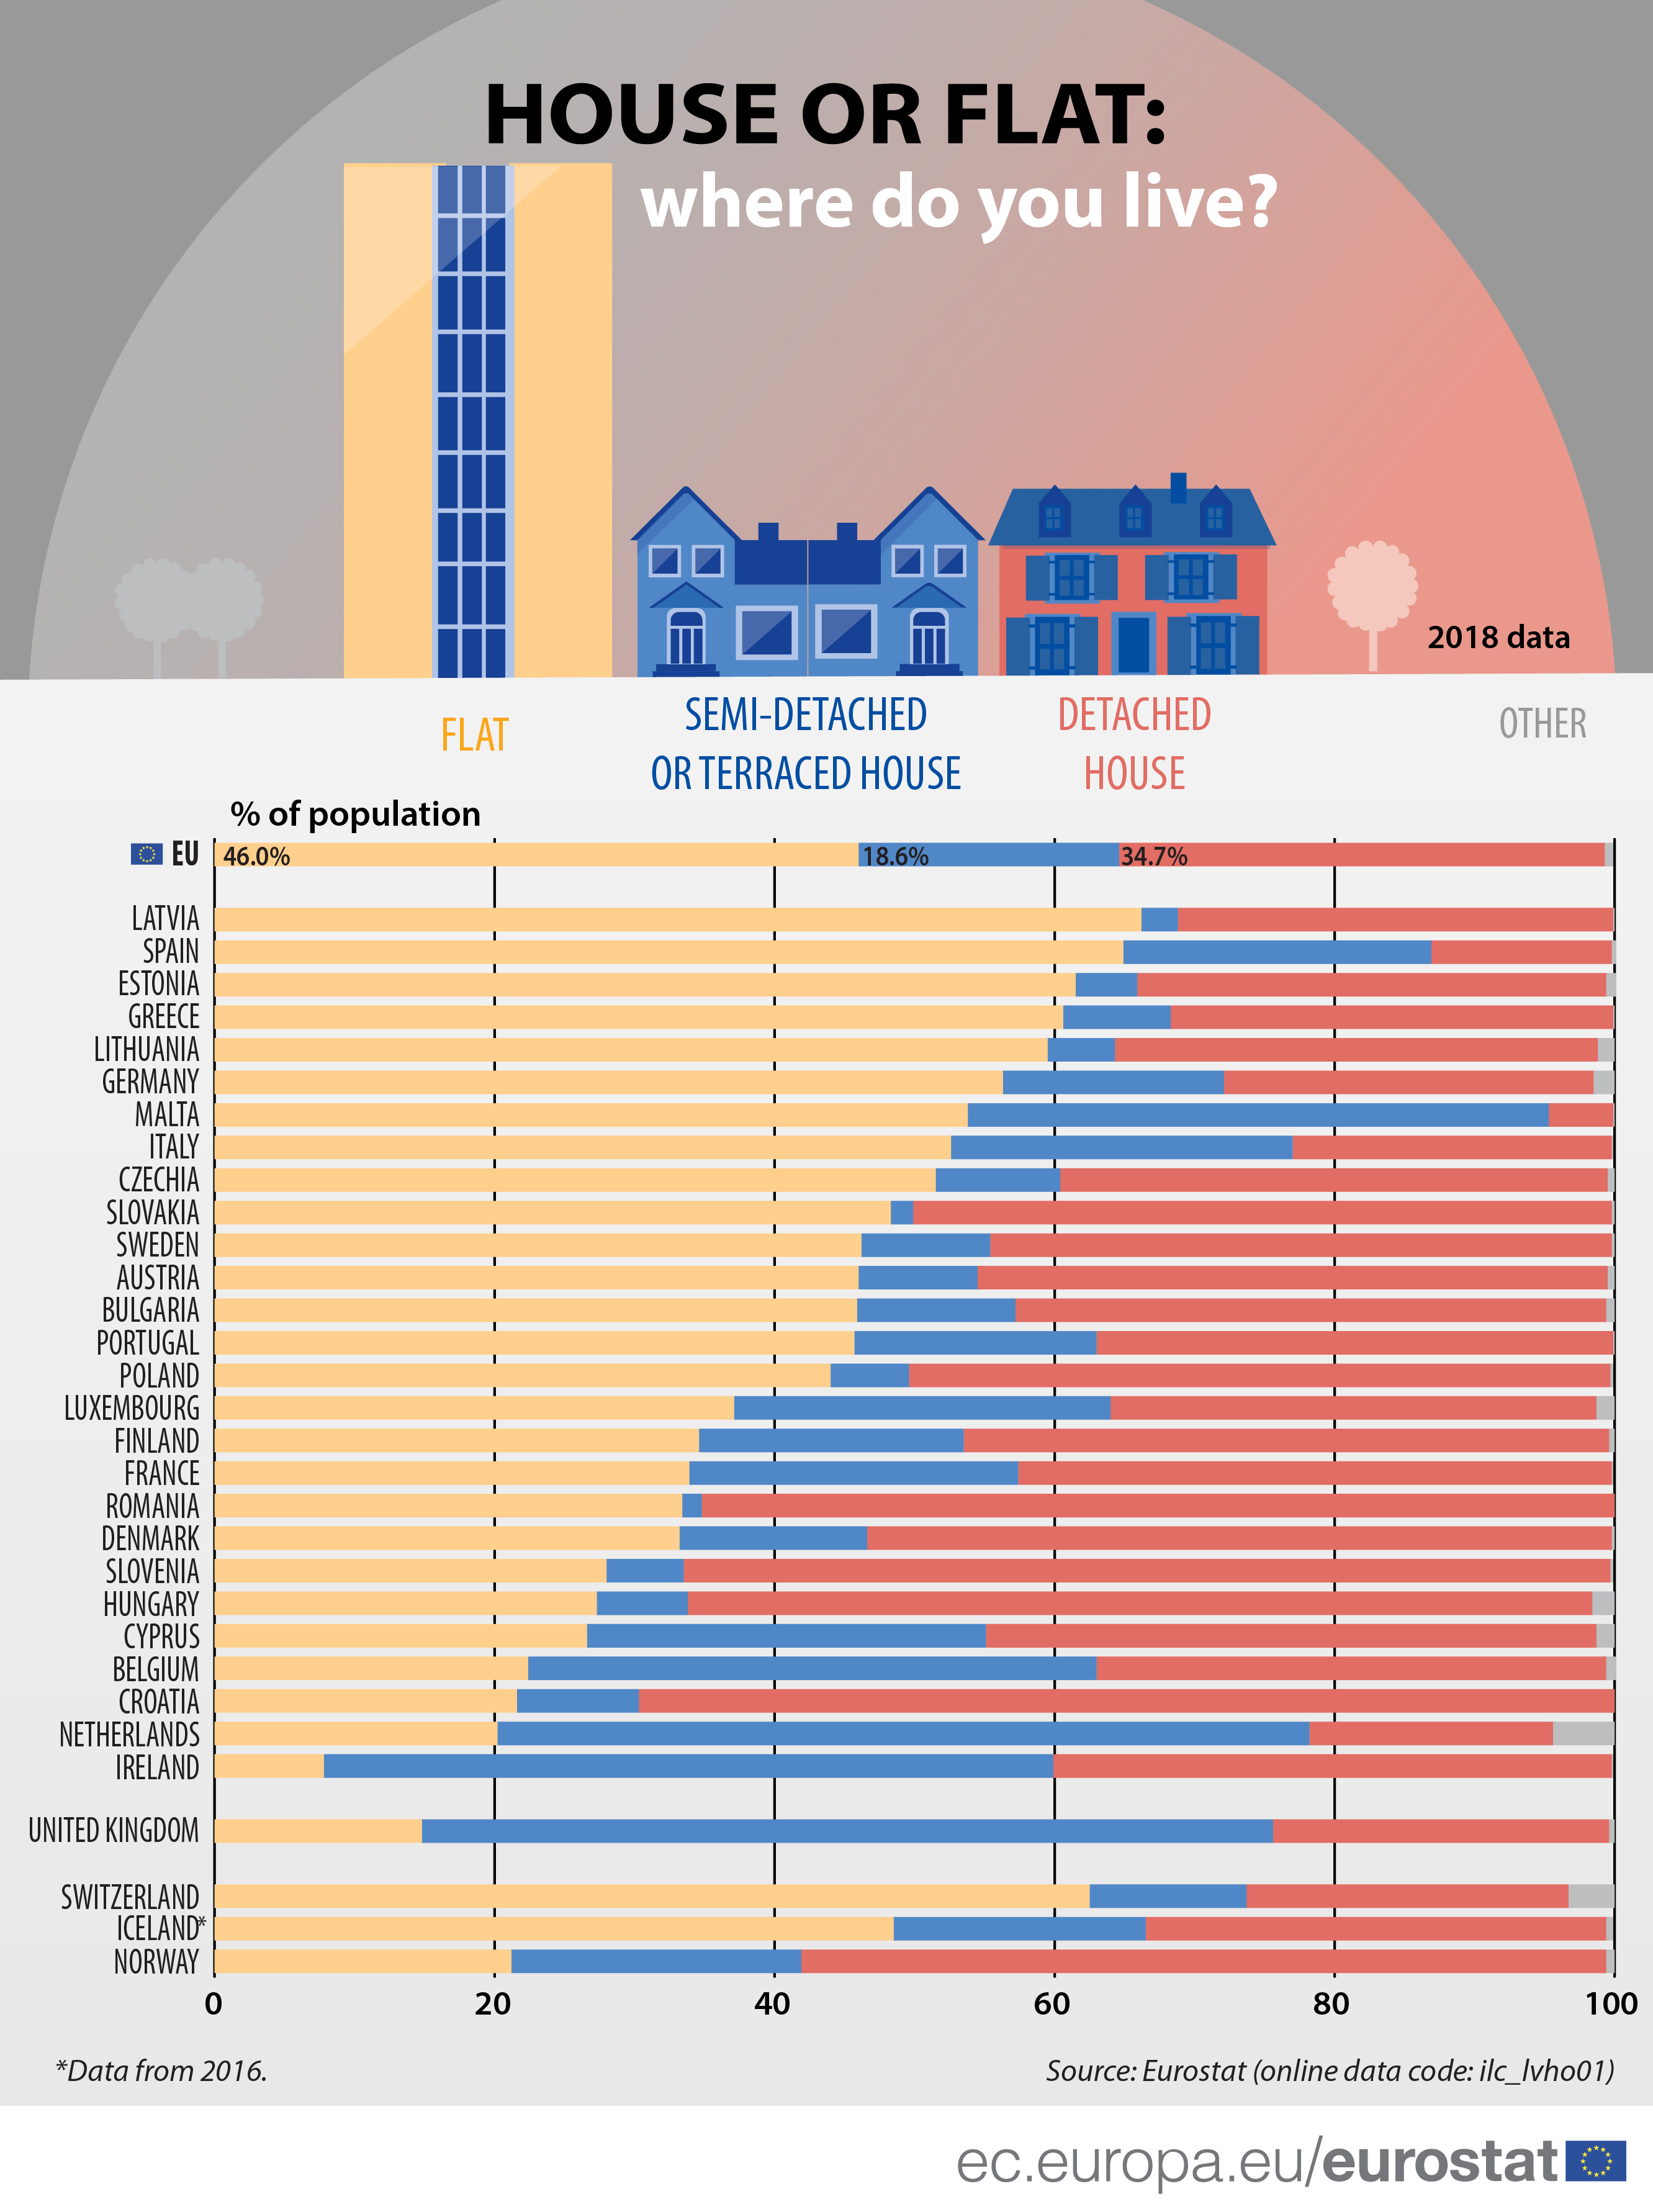 House or flat: where do you live?